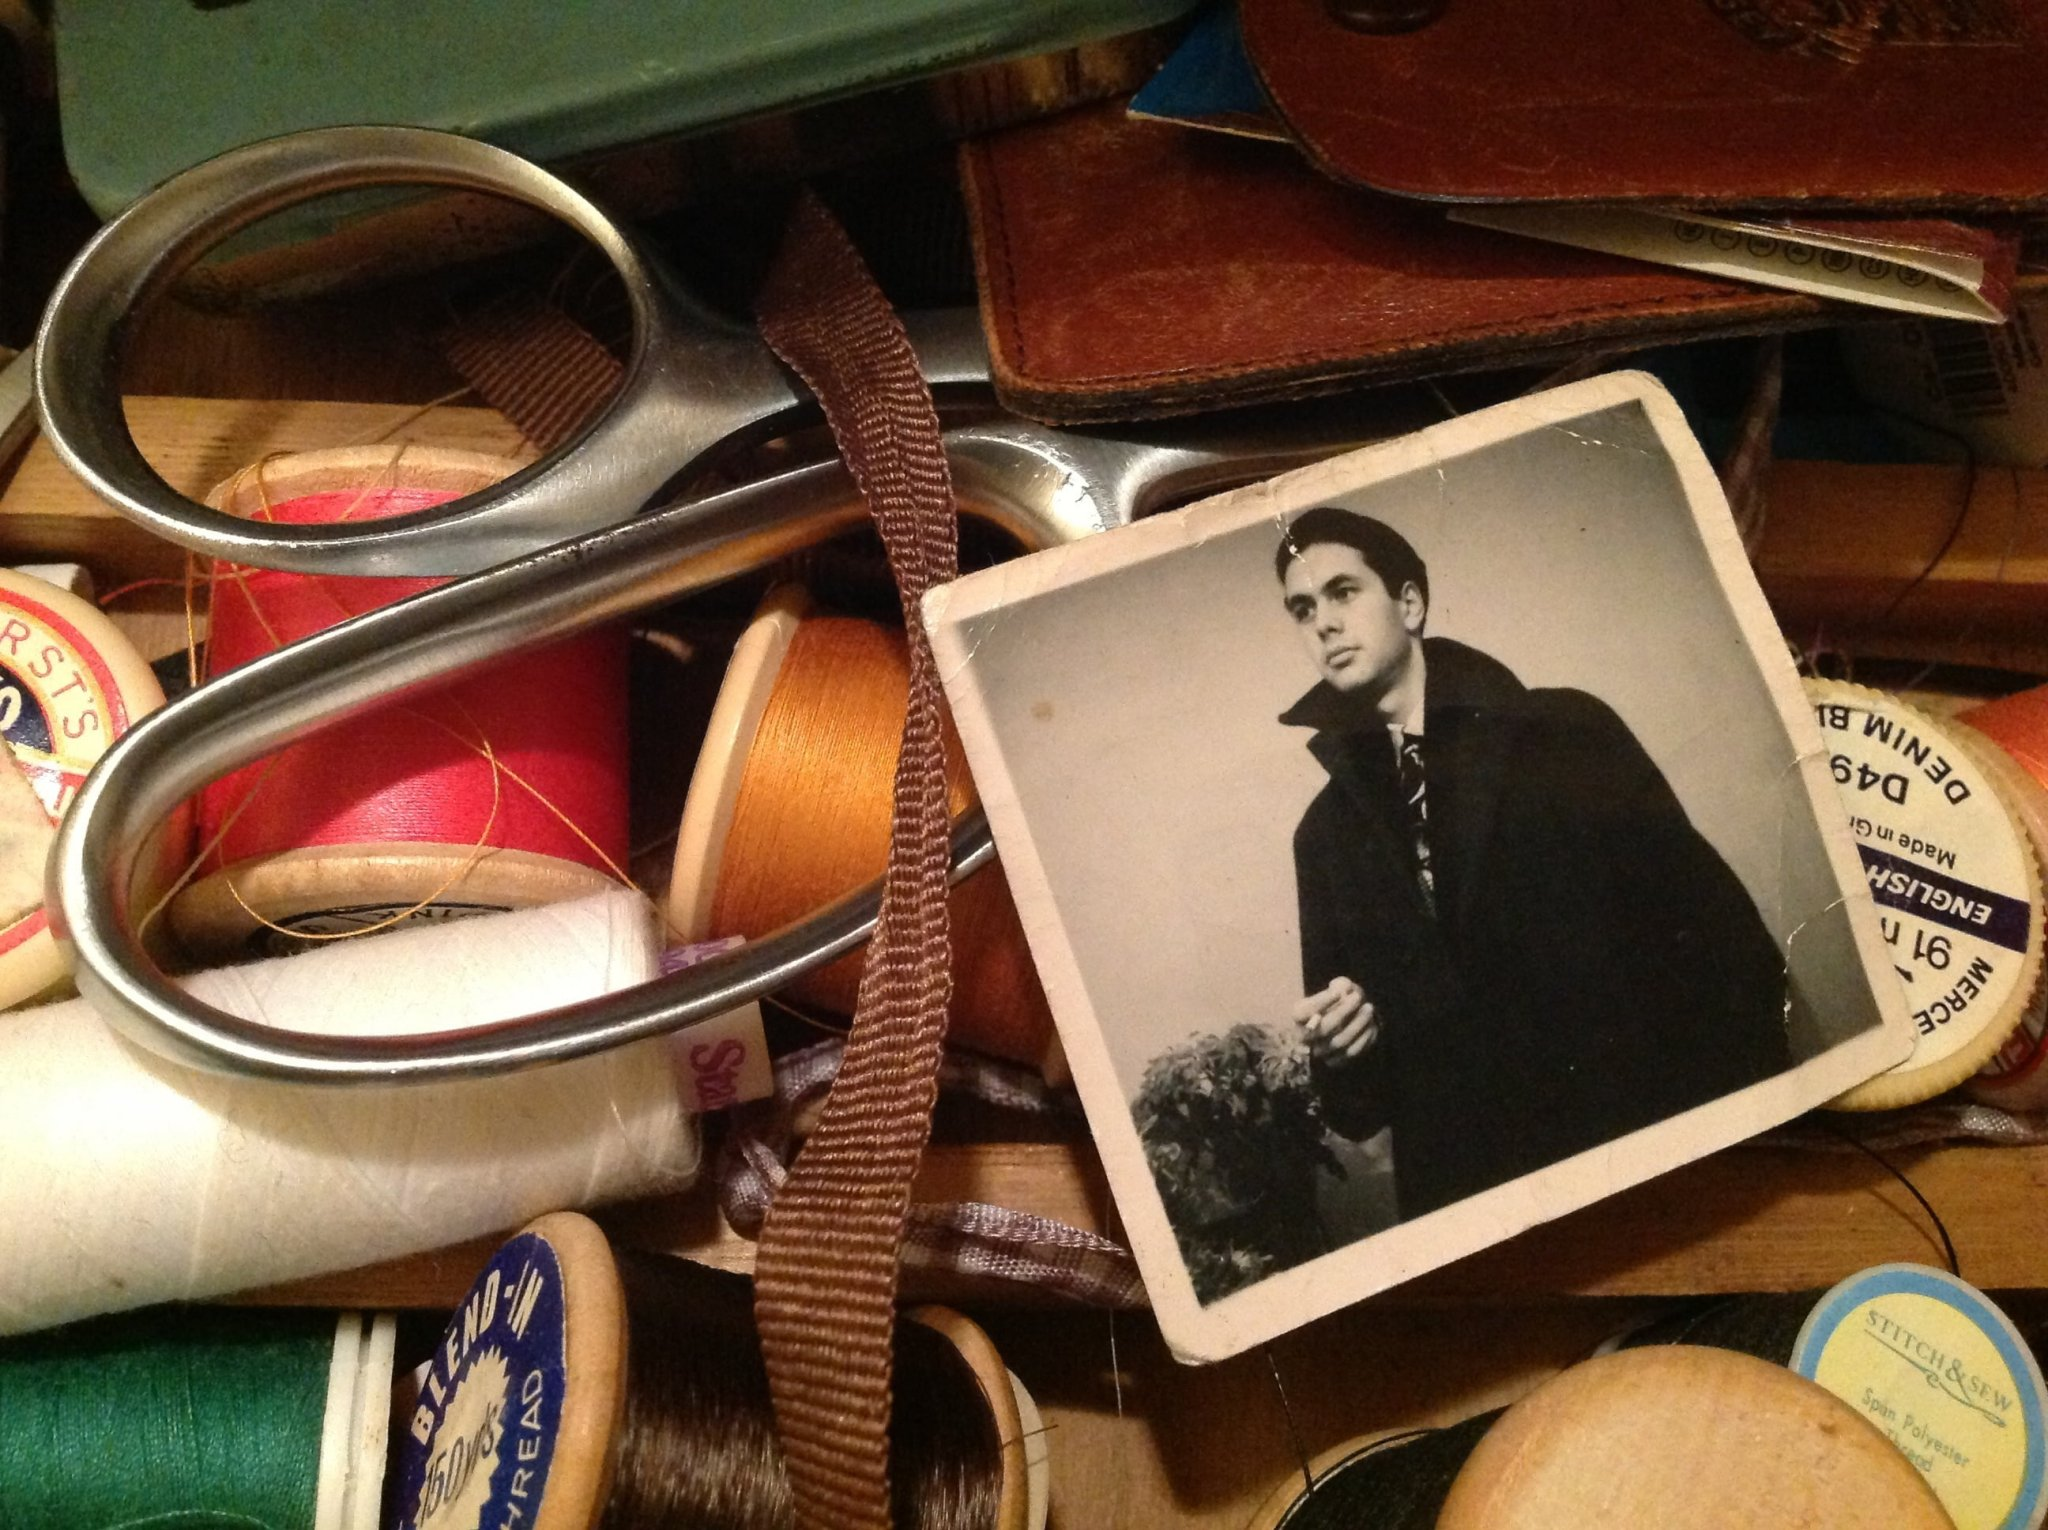 Photo in sewing box